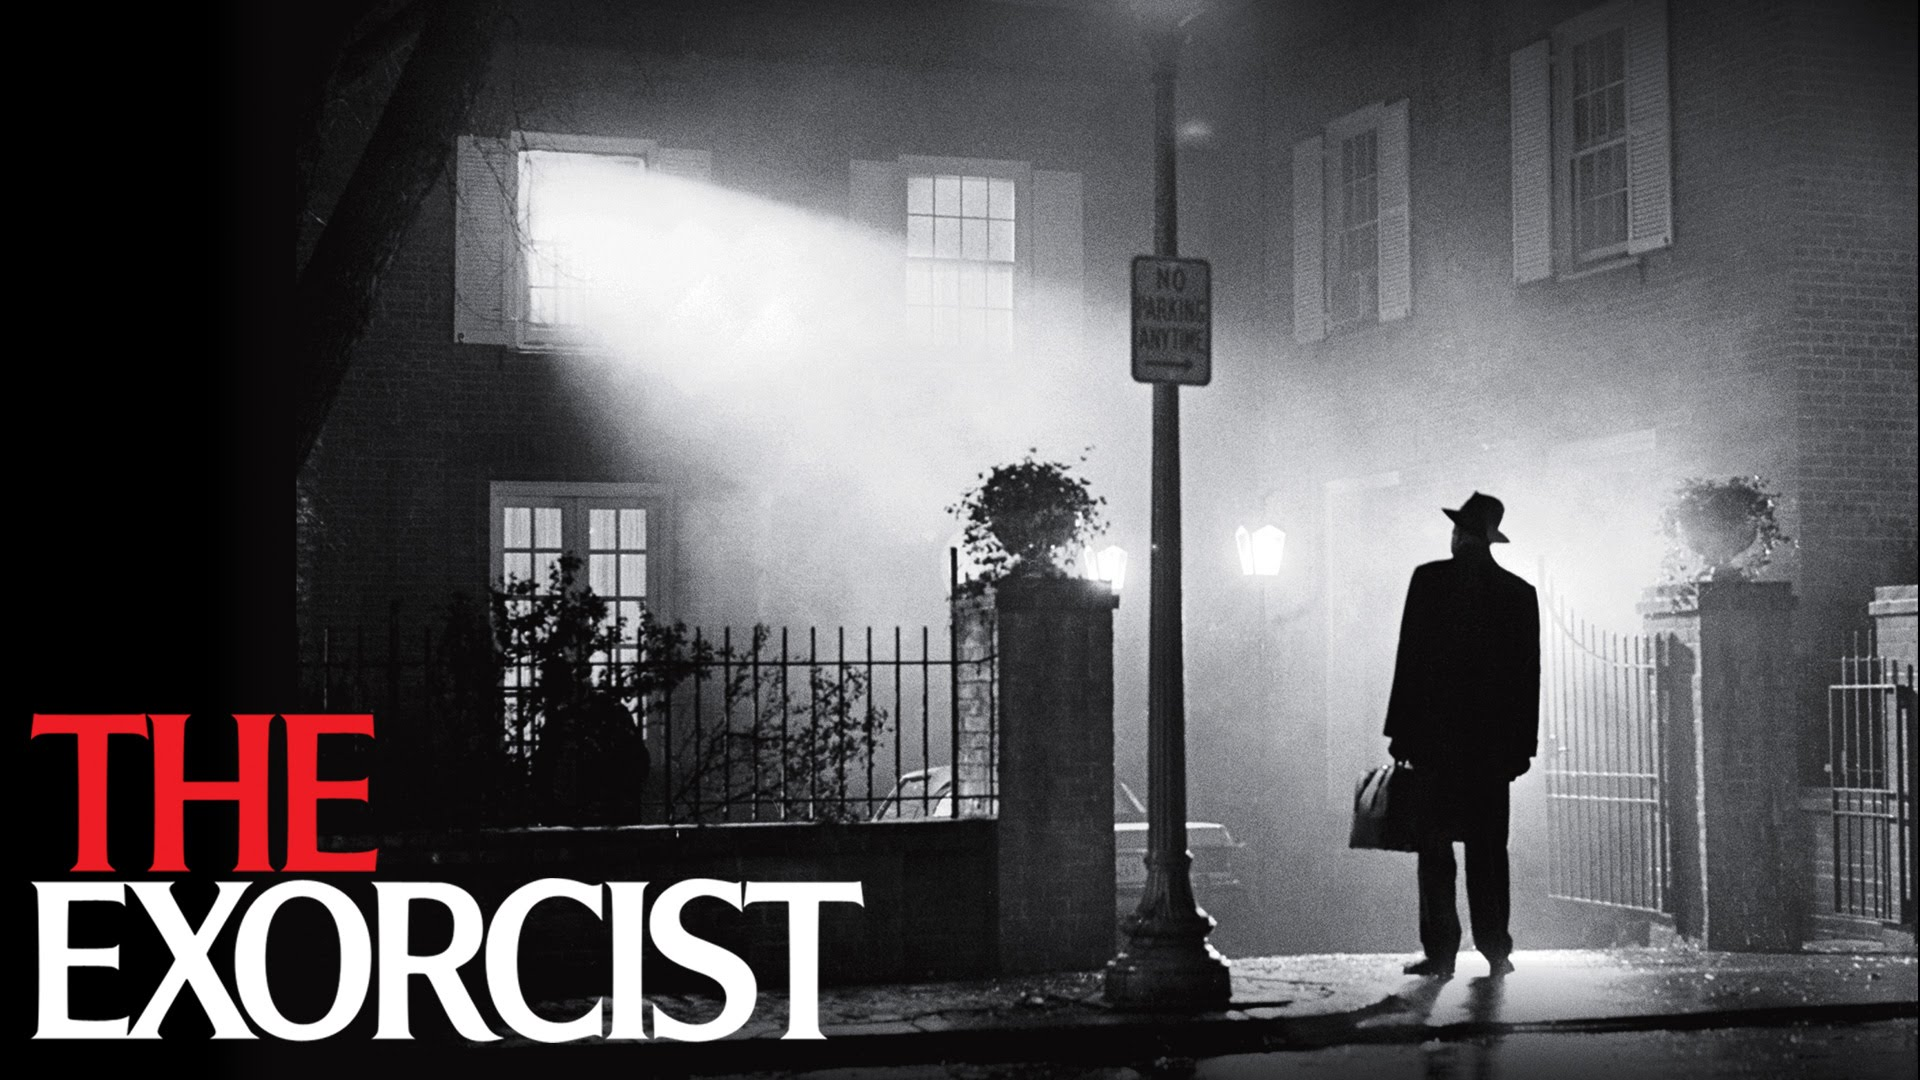 the exorcist wallpaper #8